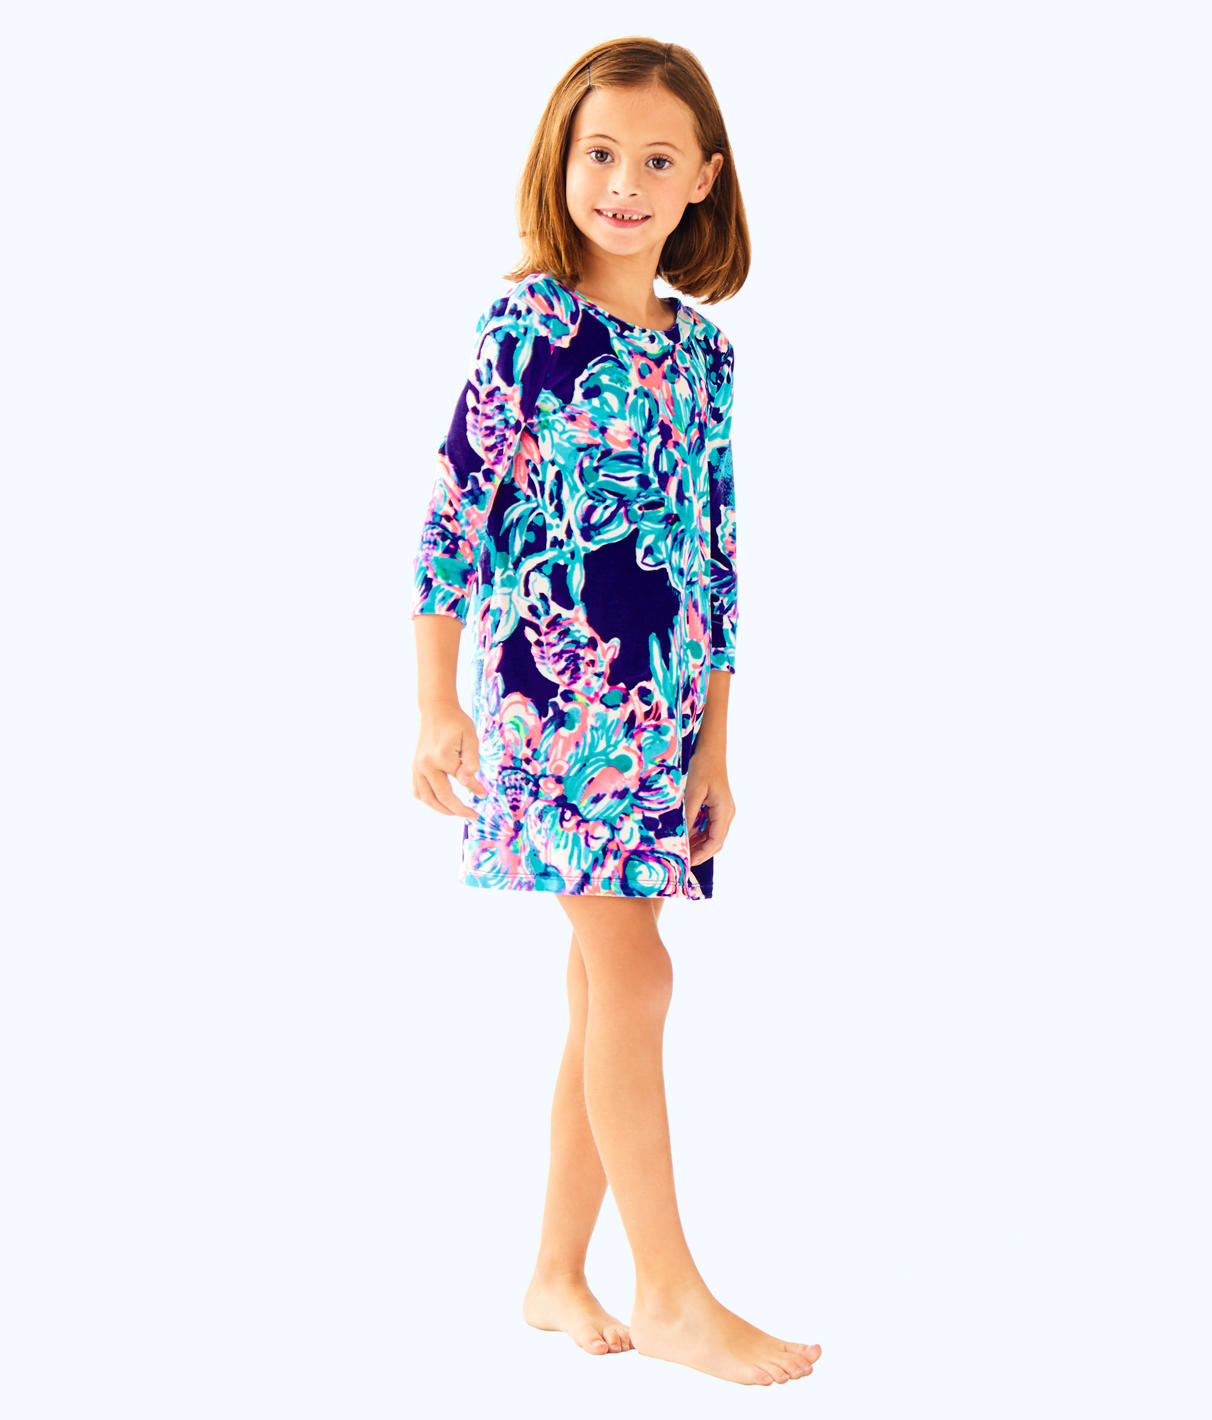 Lilly Pulitzer Lilly Pulitzer Girls Mini Olive Dress